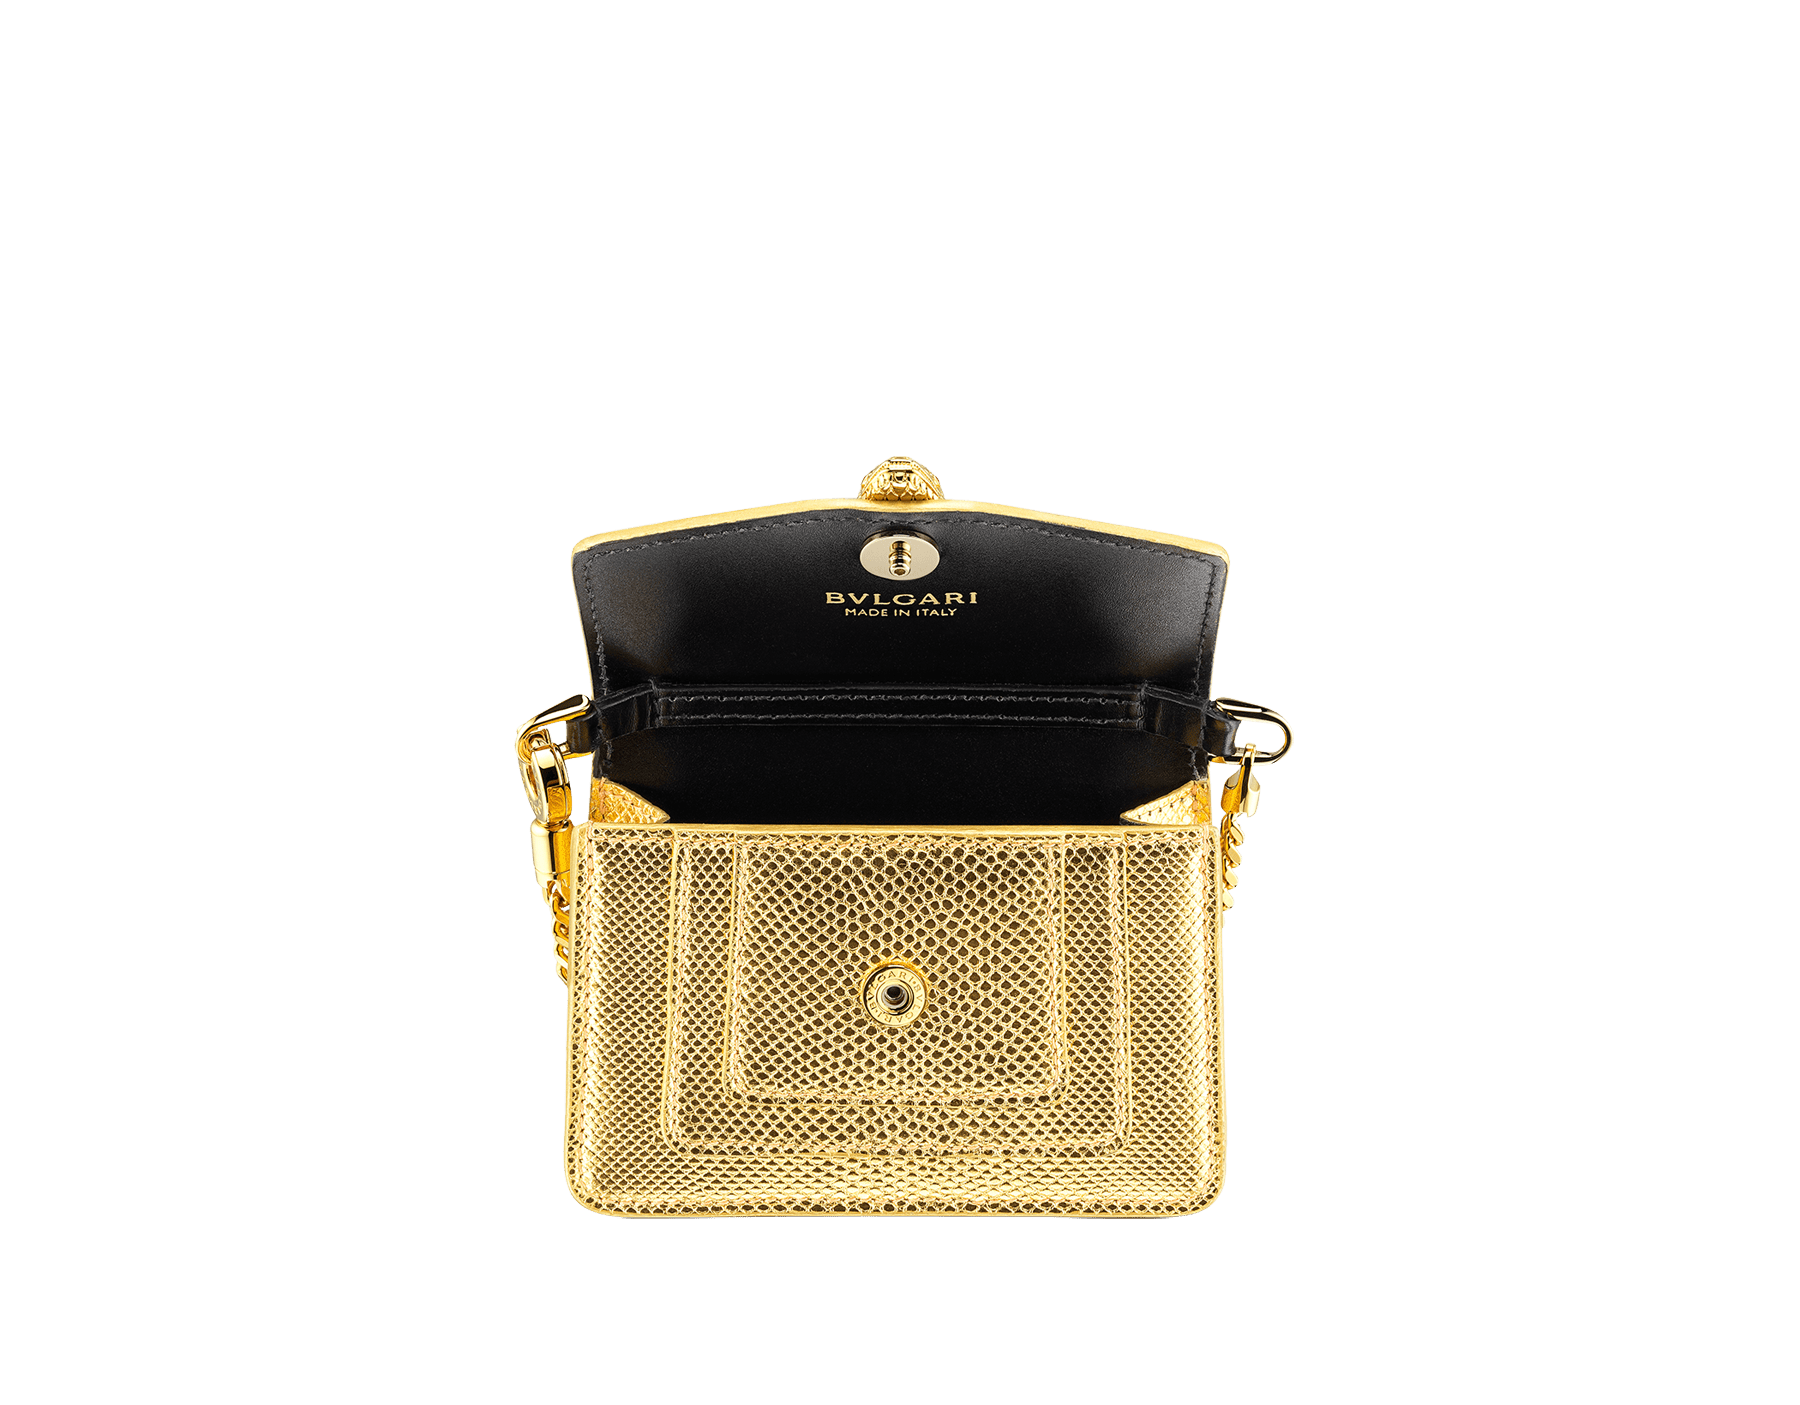 """Serpenti Forever"" mini bag in ""Molten"" gold karung skin and black calfskin, offering a touch of radiance for the Winter Holidays. New Serpenti head closure in gold-plated brass, complete with ruby-red enamel eyes. 290631 image 2"